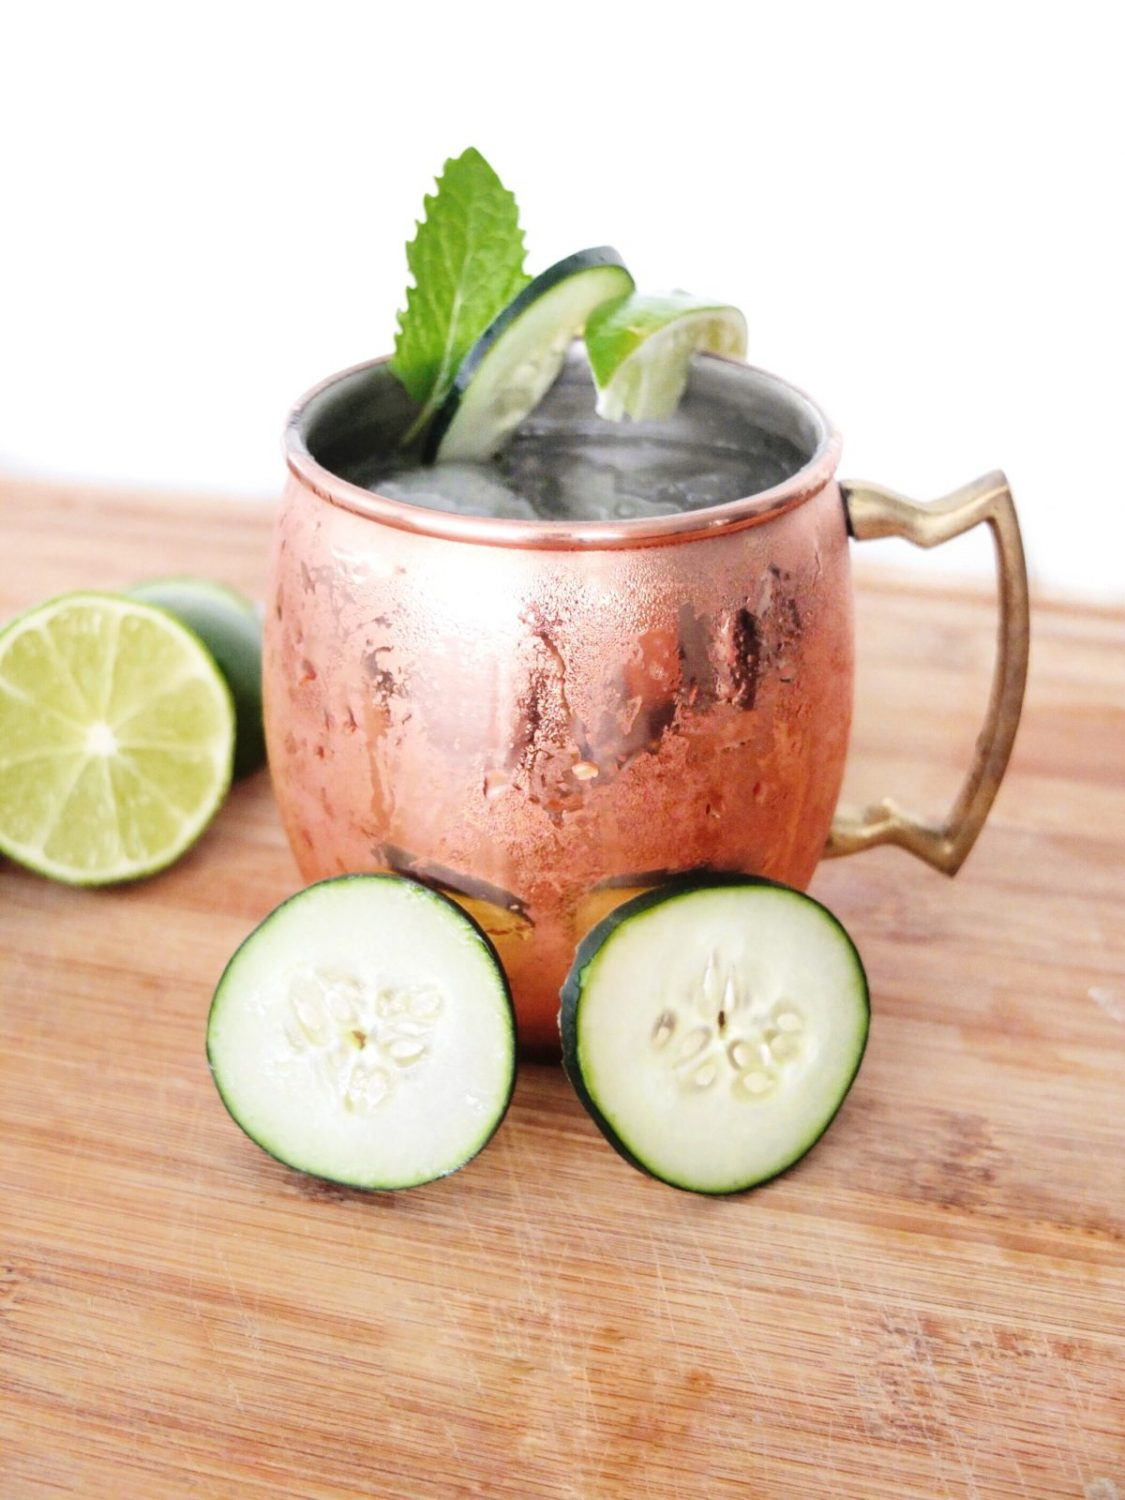 This cucumber Moscow mule is taste similar to spa water but in cocktail form! This easy to make cocktail takes cucumber, mint, lime, vodka, and ginger beer to make a delicious and refreshing cocktail for relaxing. Spa Water Mule. // www.ElleTalk.com